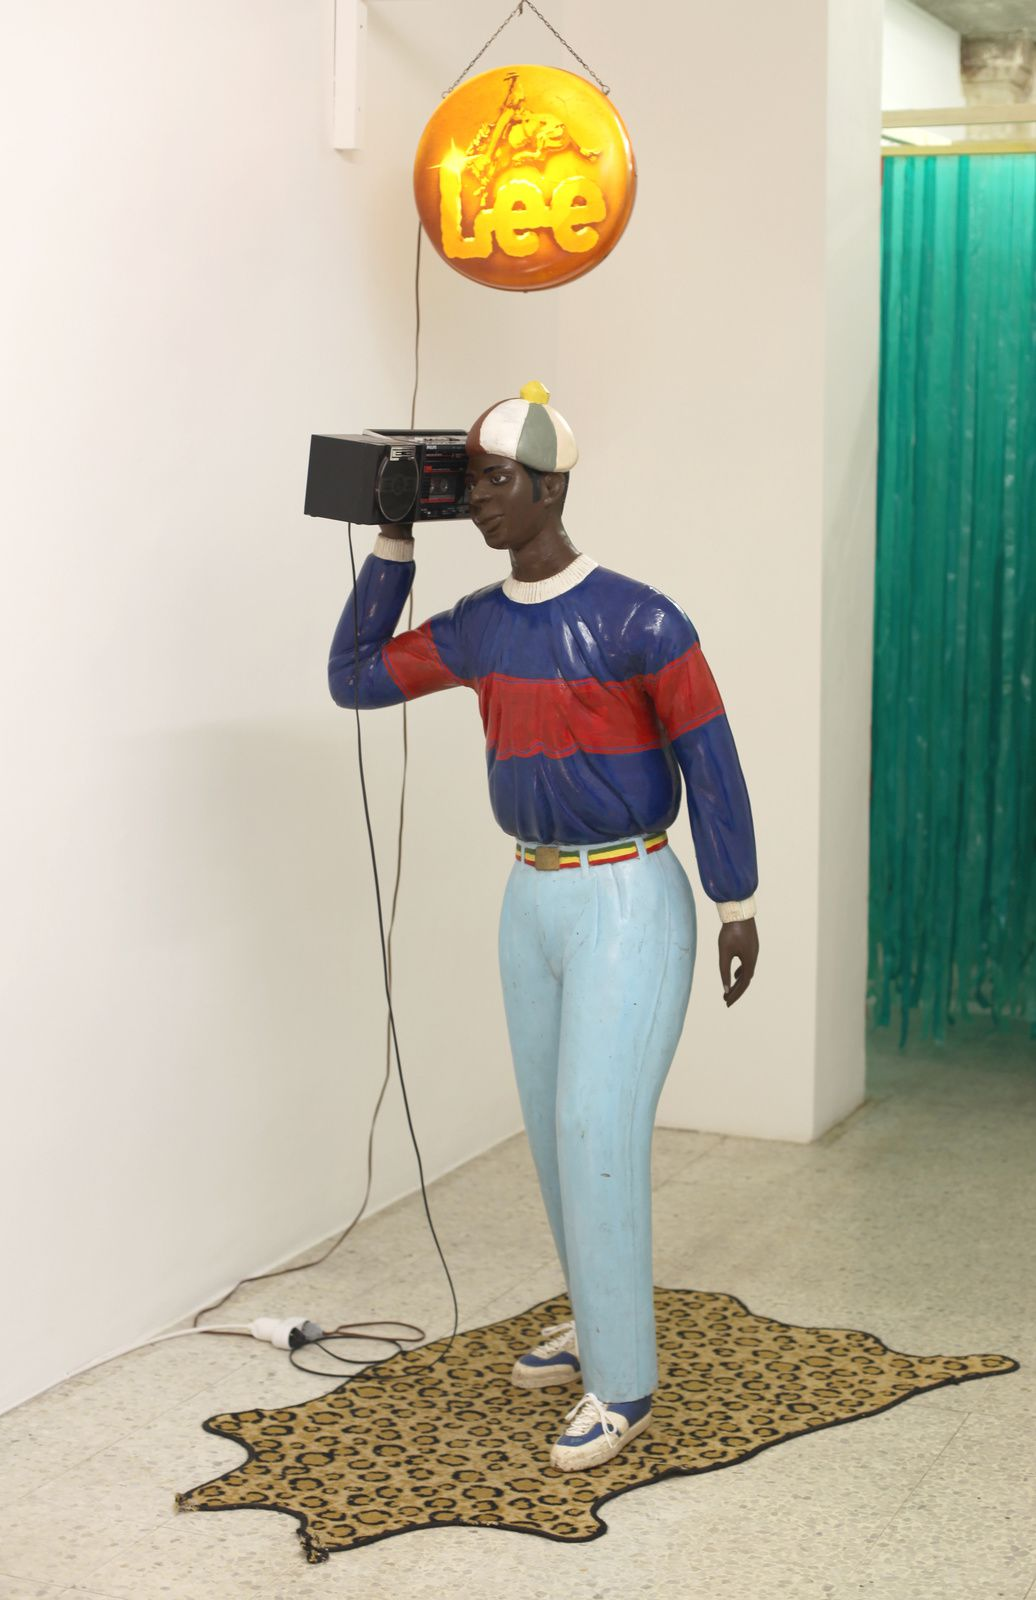 """Disco Boy"", 1986 de Présence Panchounette - Courtesy Galerie SEMIOSE © Photo Éric Simon"